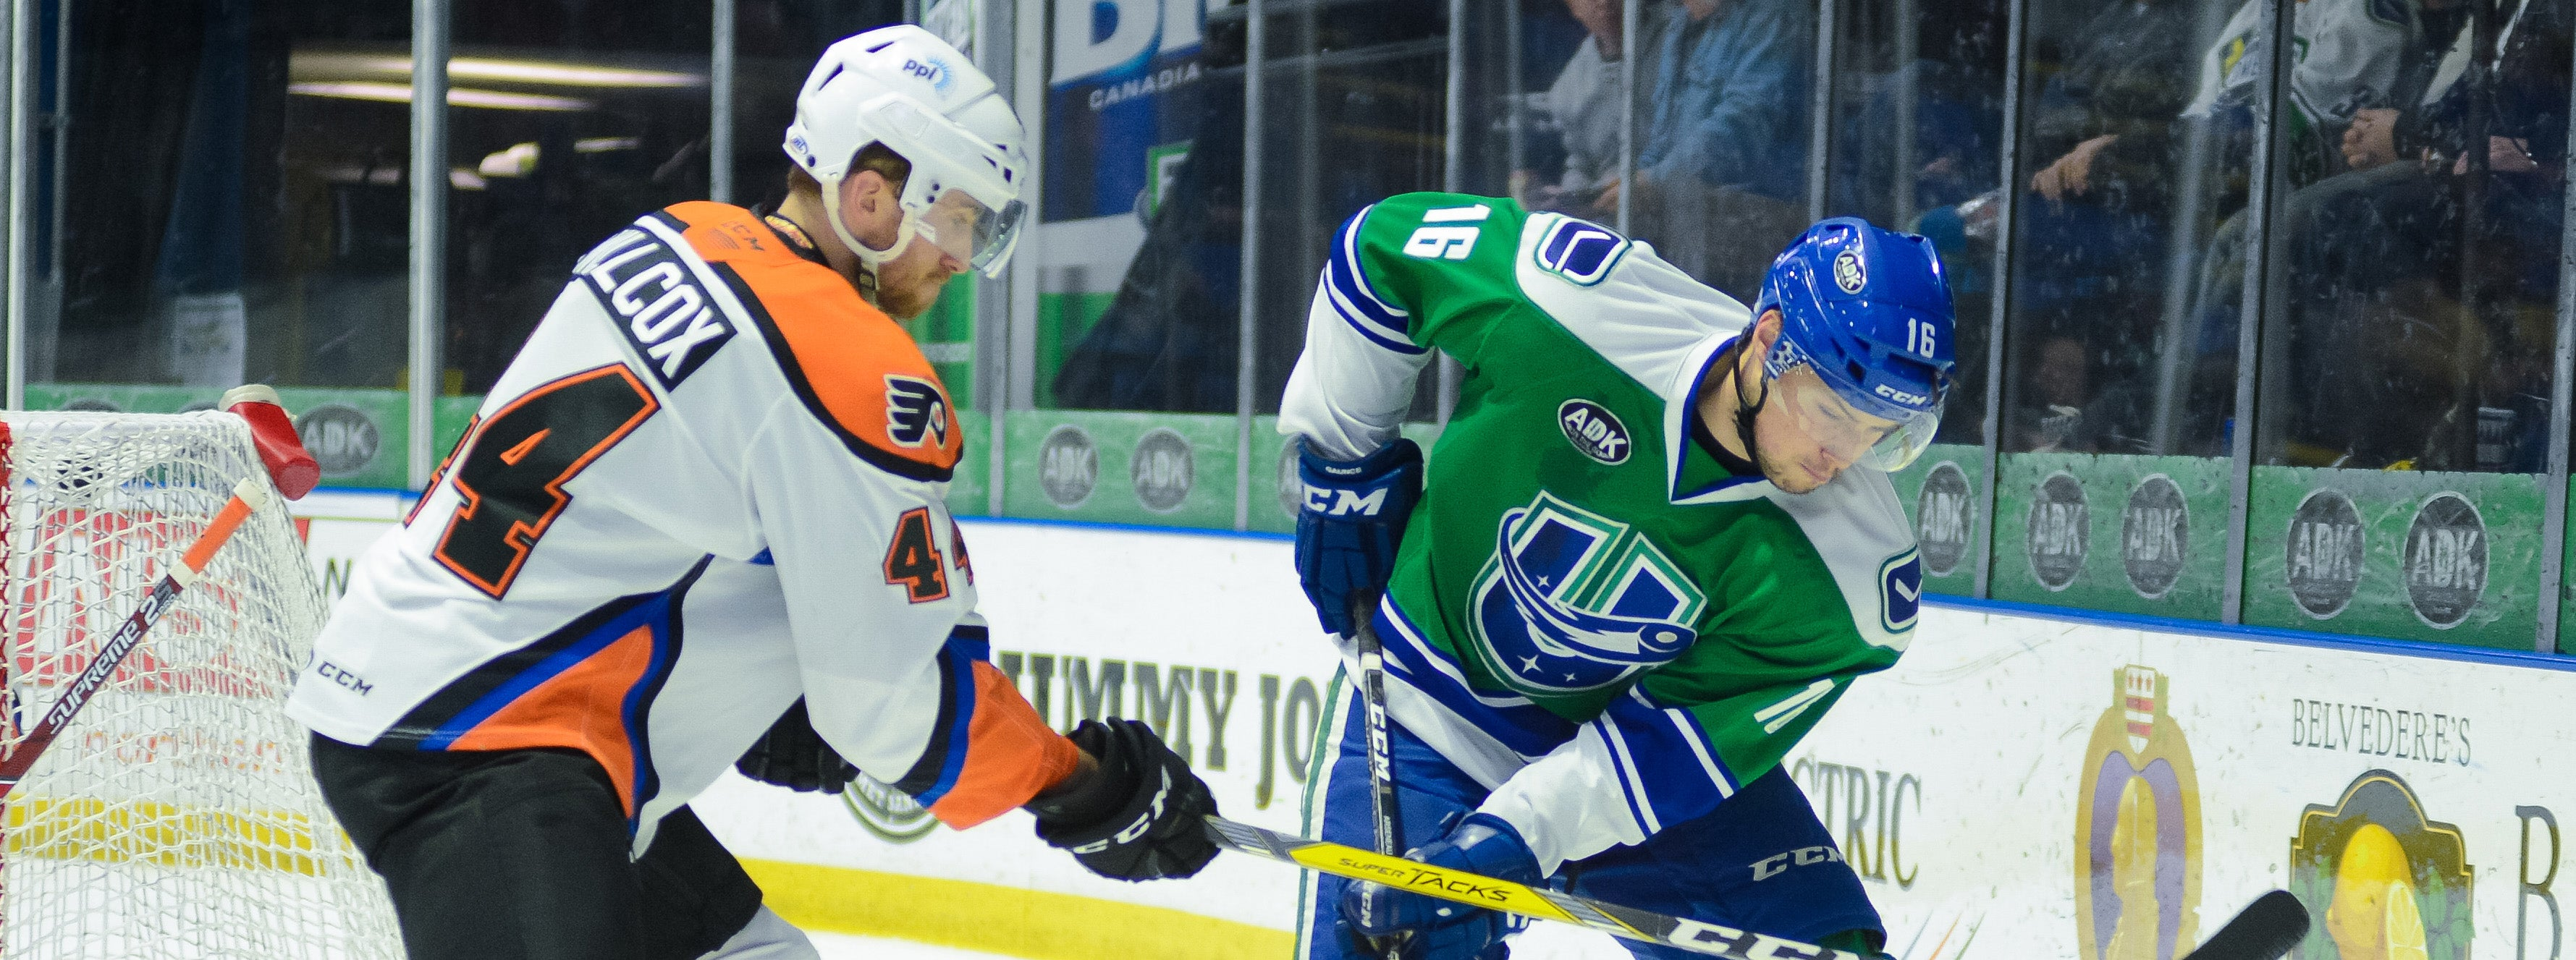 COMETS TRAVEL TO ALLENTOWN TO BATTLE PHANTOMS